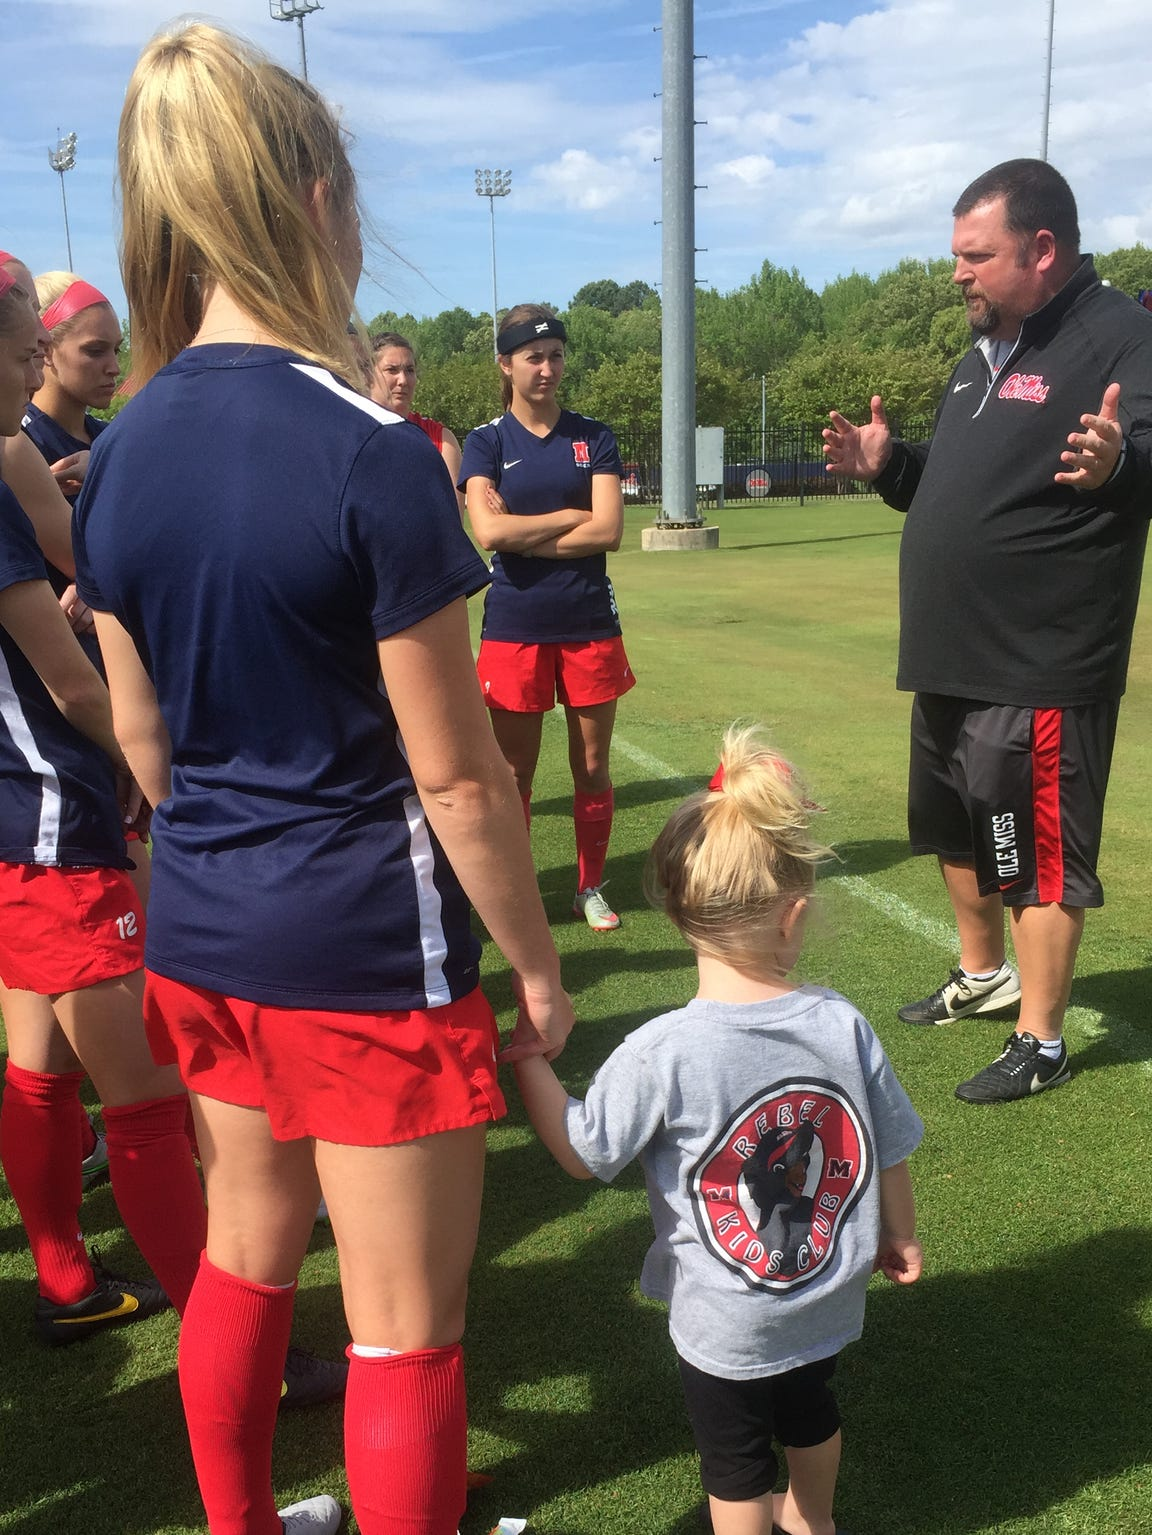 Sara Coleman attends practice while holding her daughter's